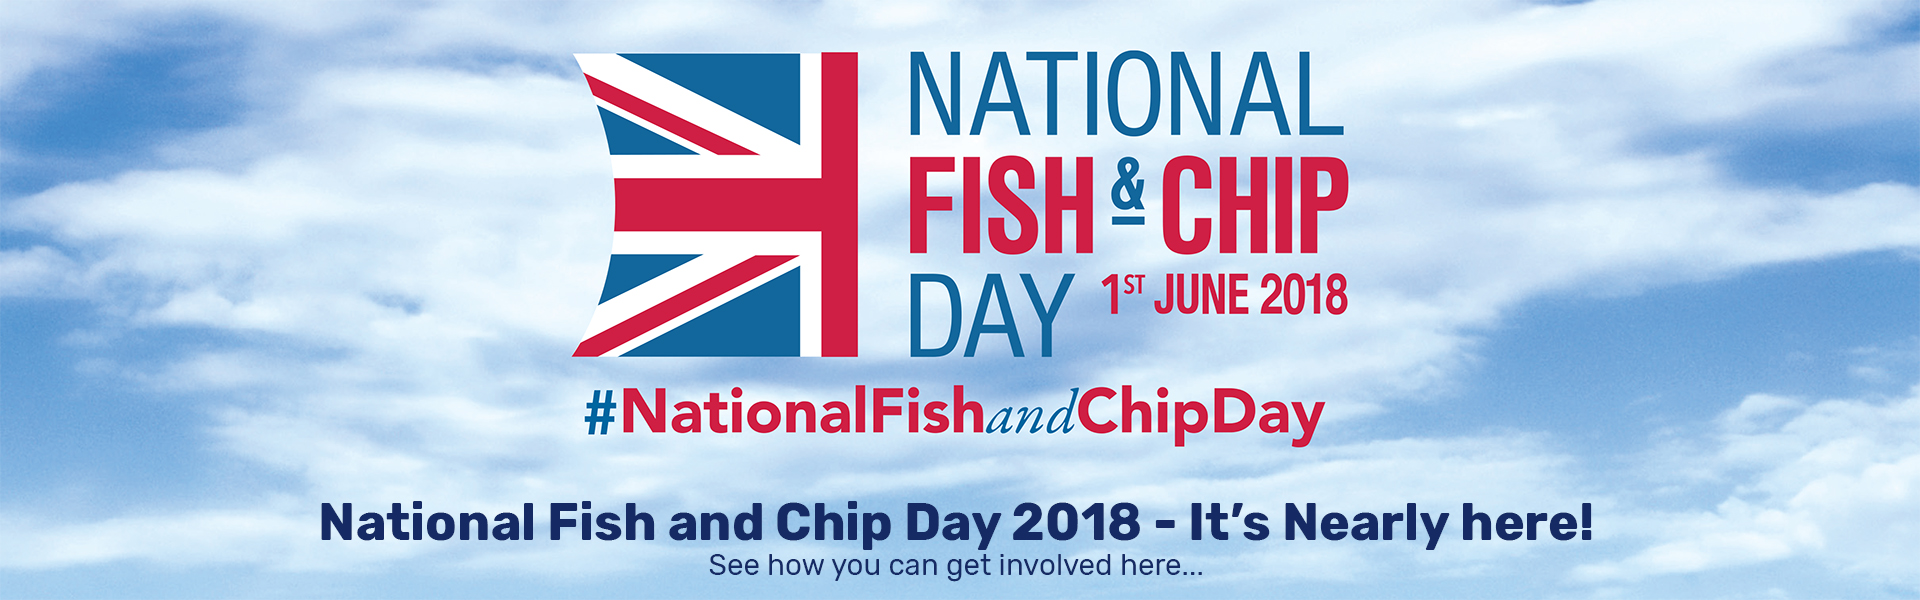 National Fish and Chip Day 2018